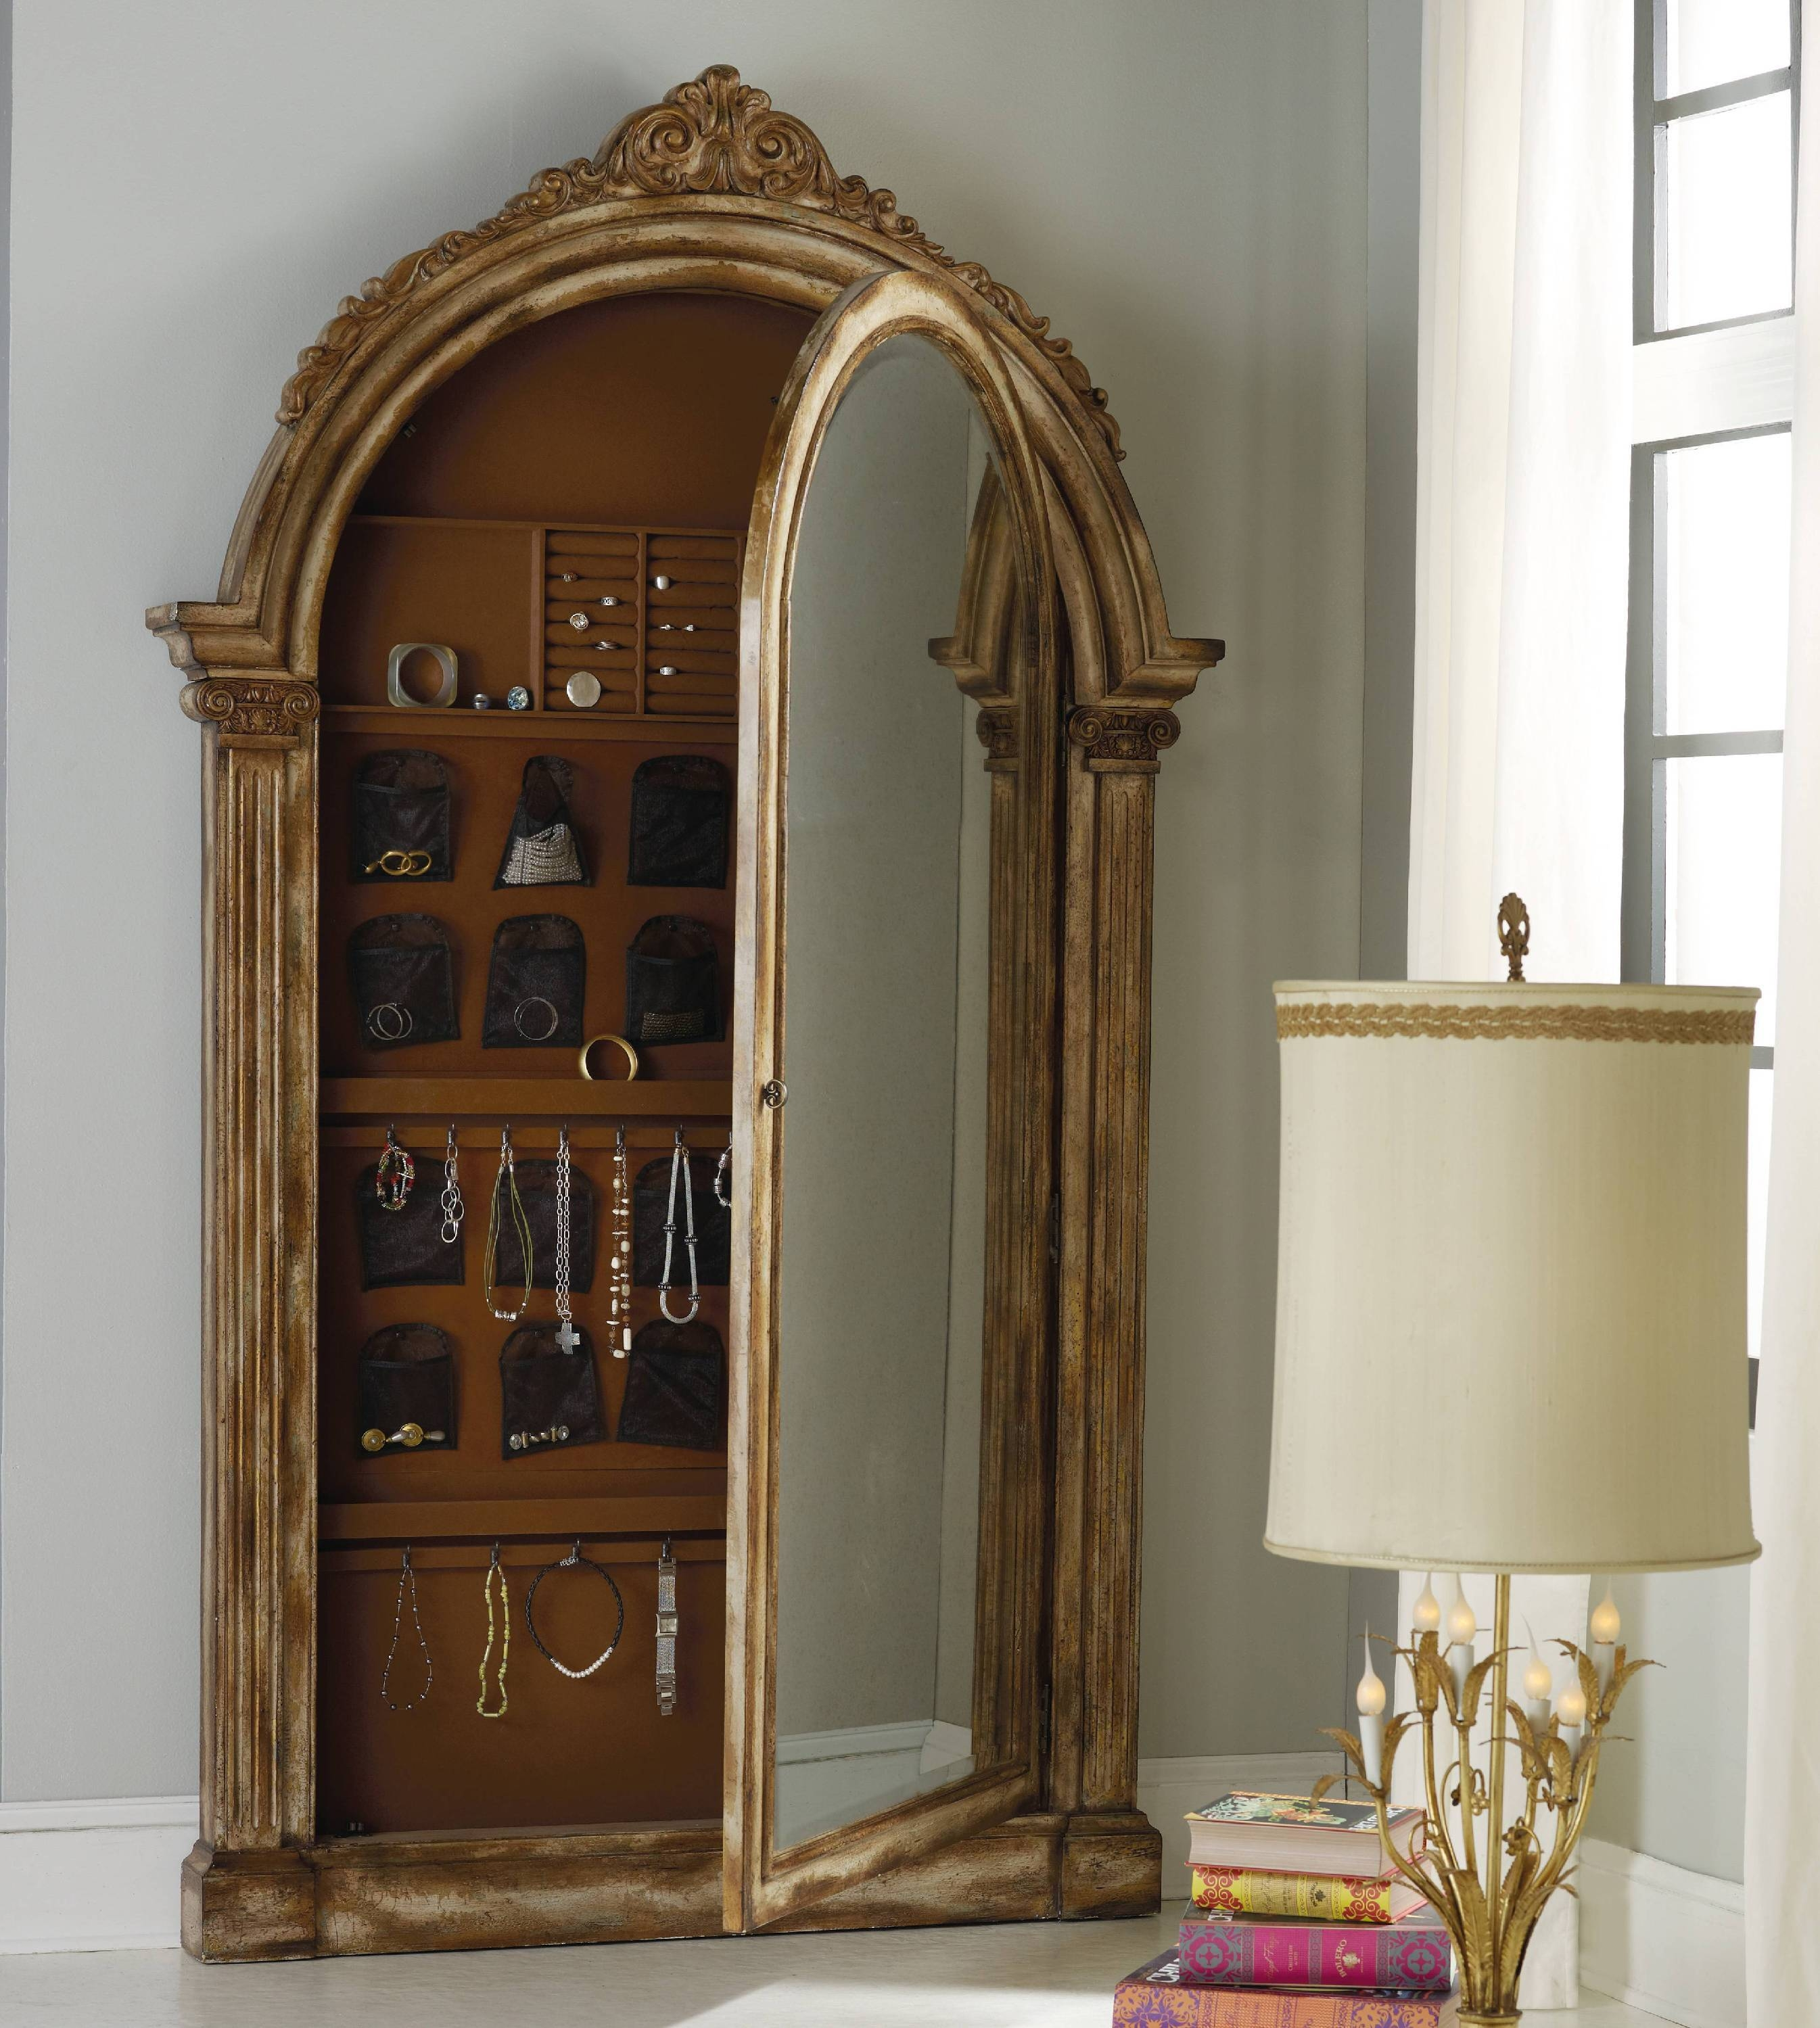 Furniture: Antique Wooden Jewelry Armoire Mirror With White Wall With Regard To Vintage Floor Length Mirrors (View 9 of 15)